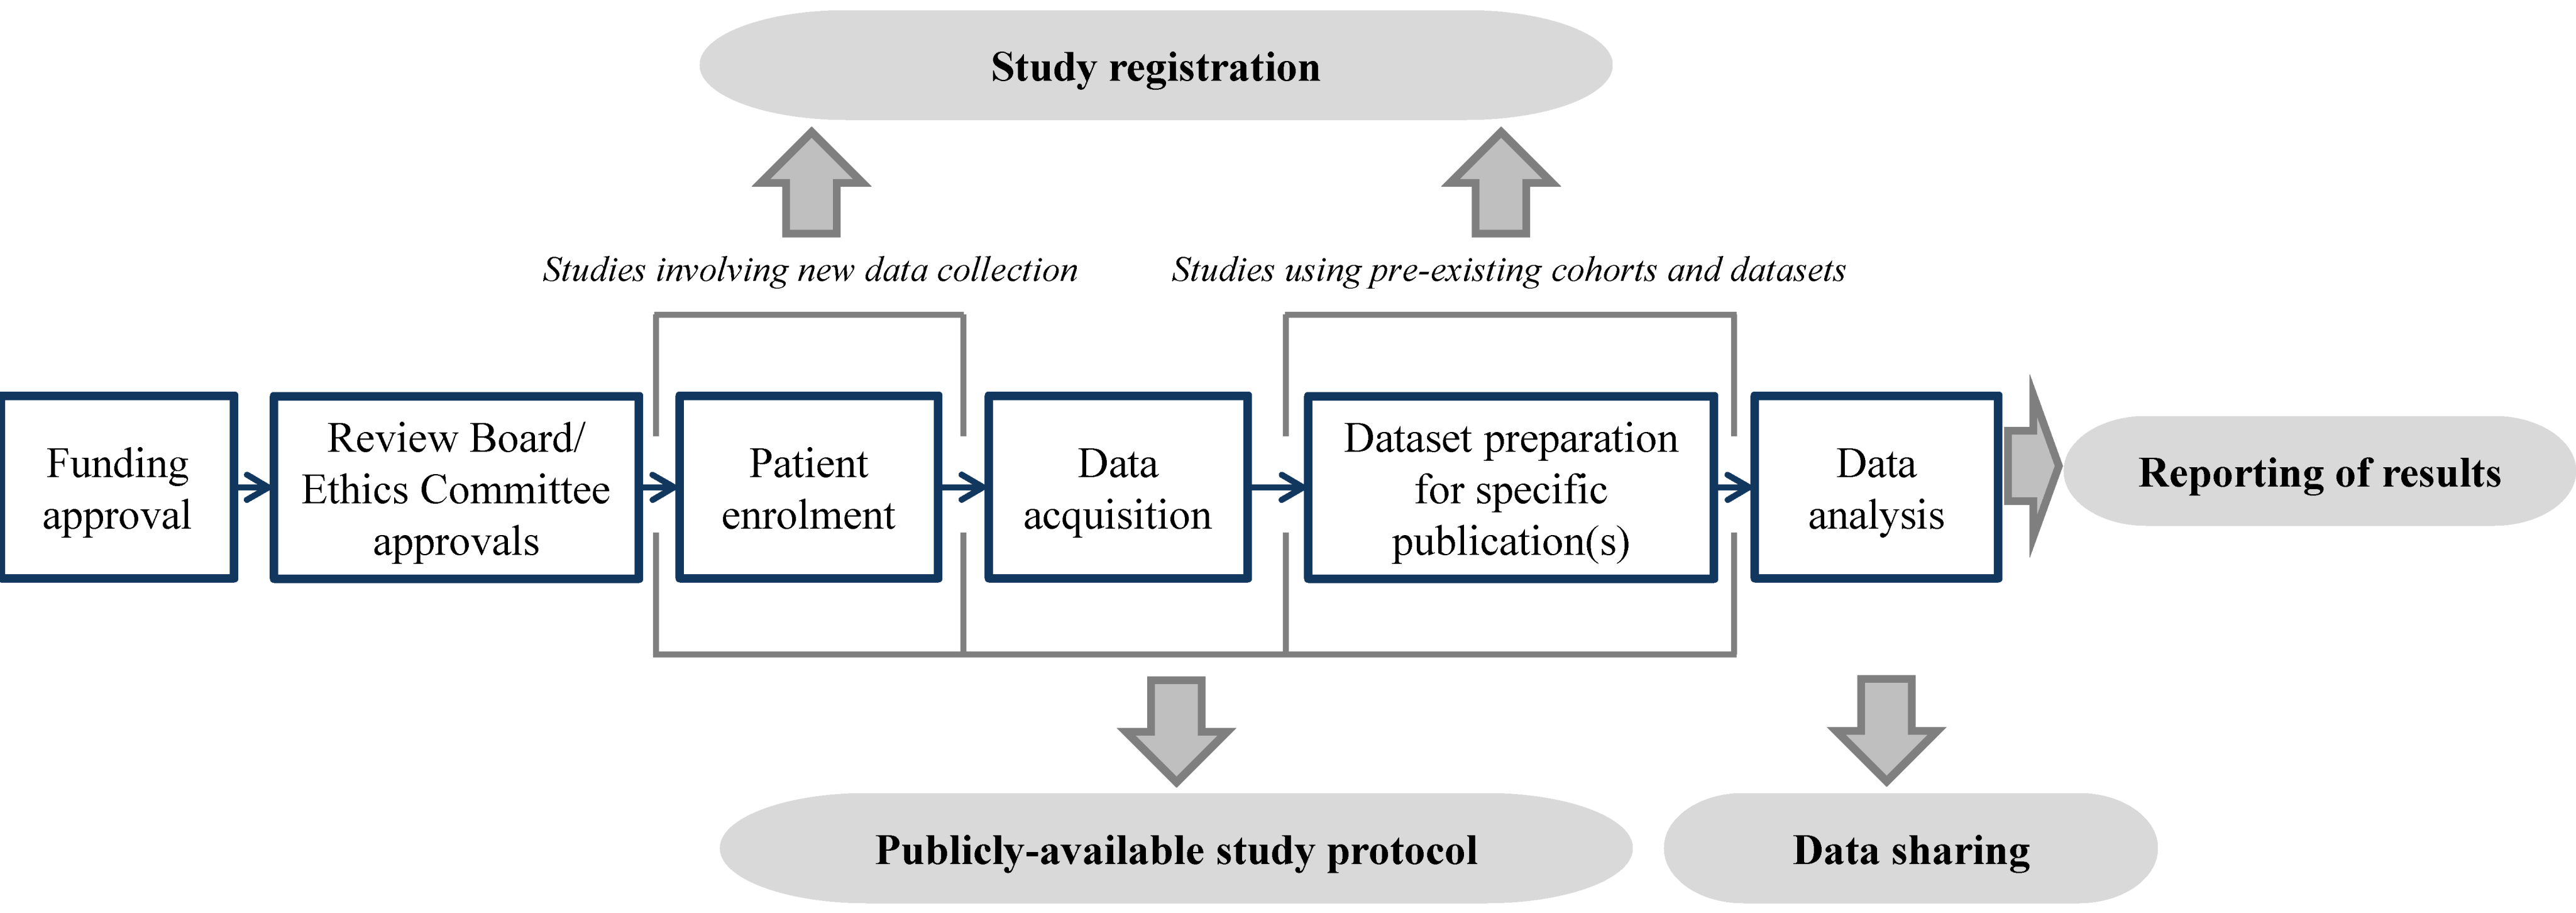 Illustration of the timing of prognosis study registration, protocol publication, data sharing, and reporting.